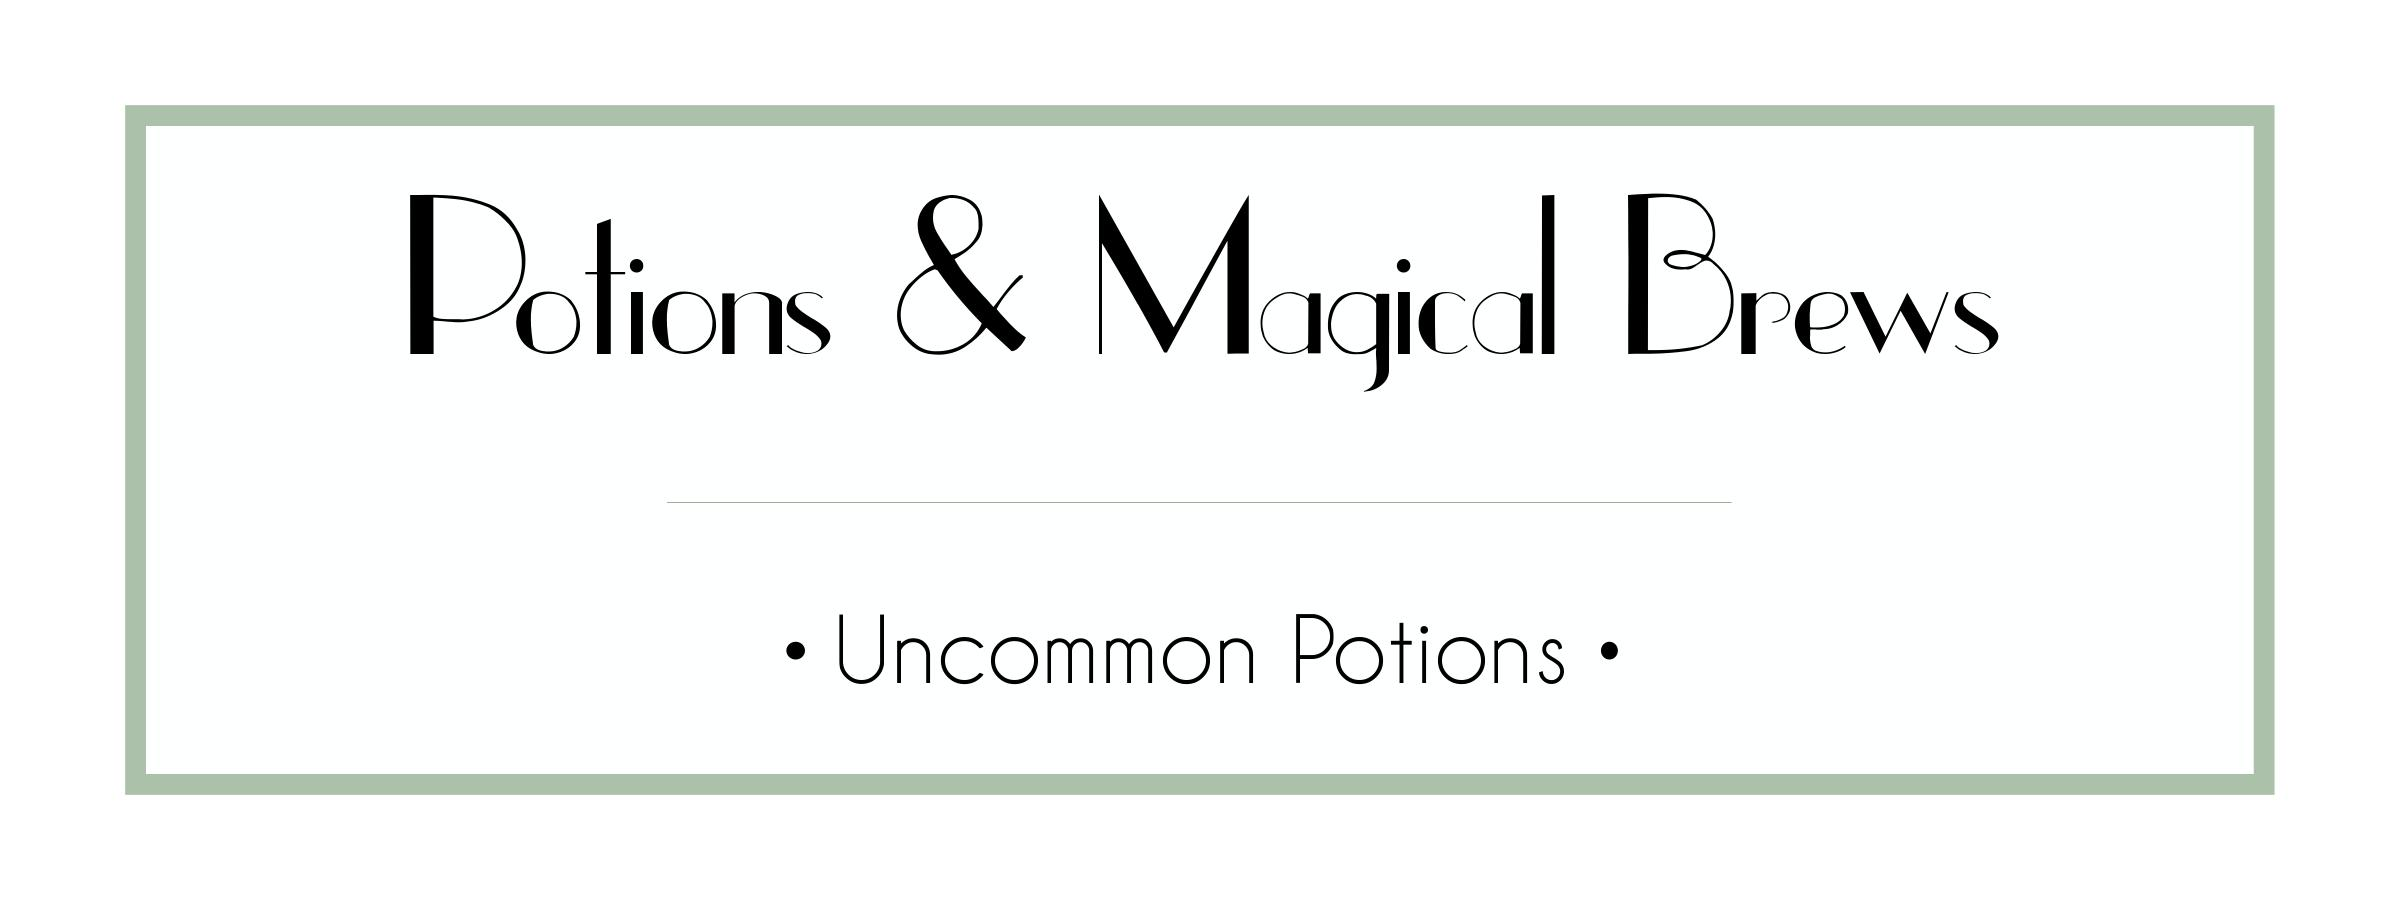 Potions & Magical Brews - Uncommon Potions